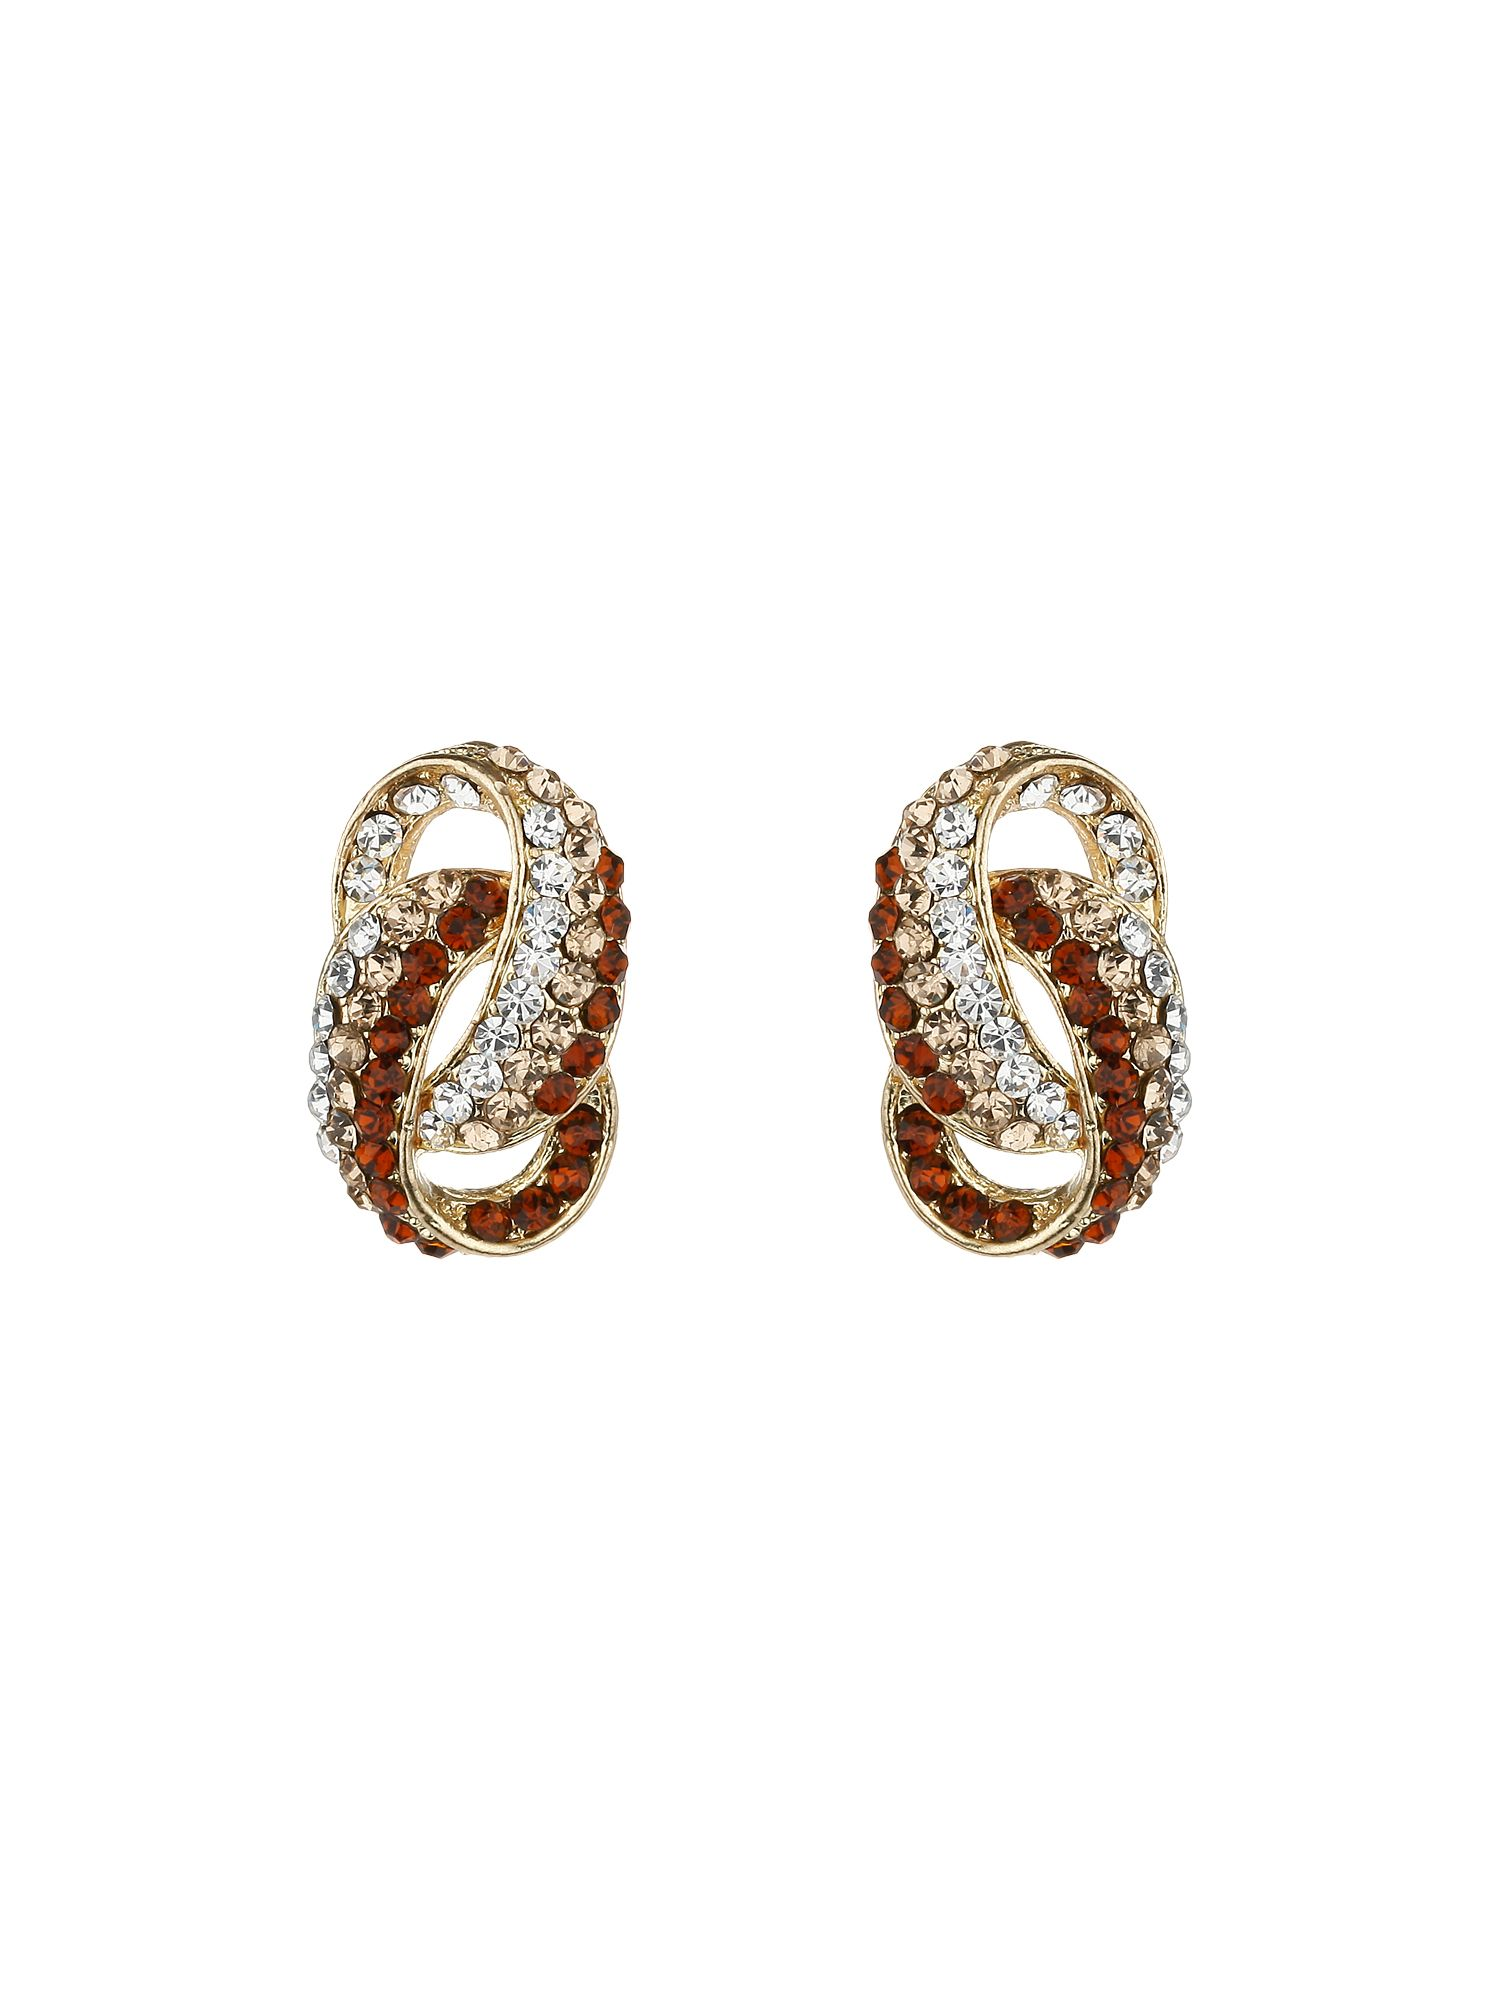 D loop earrings